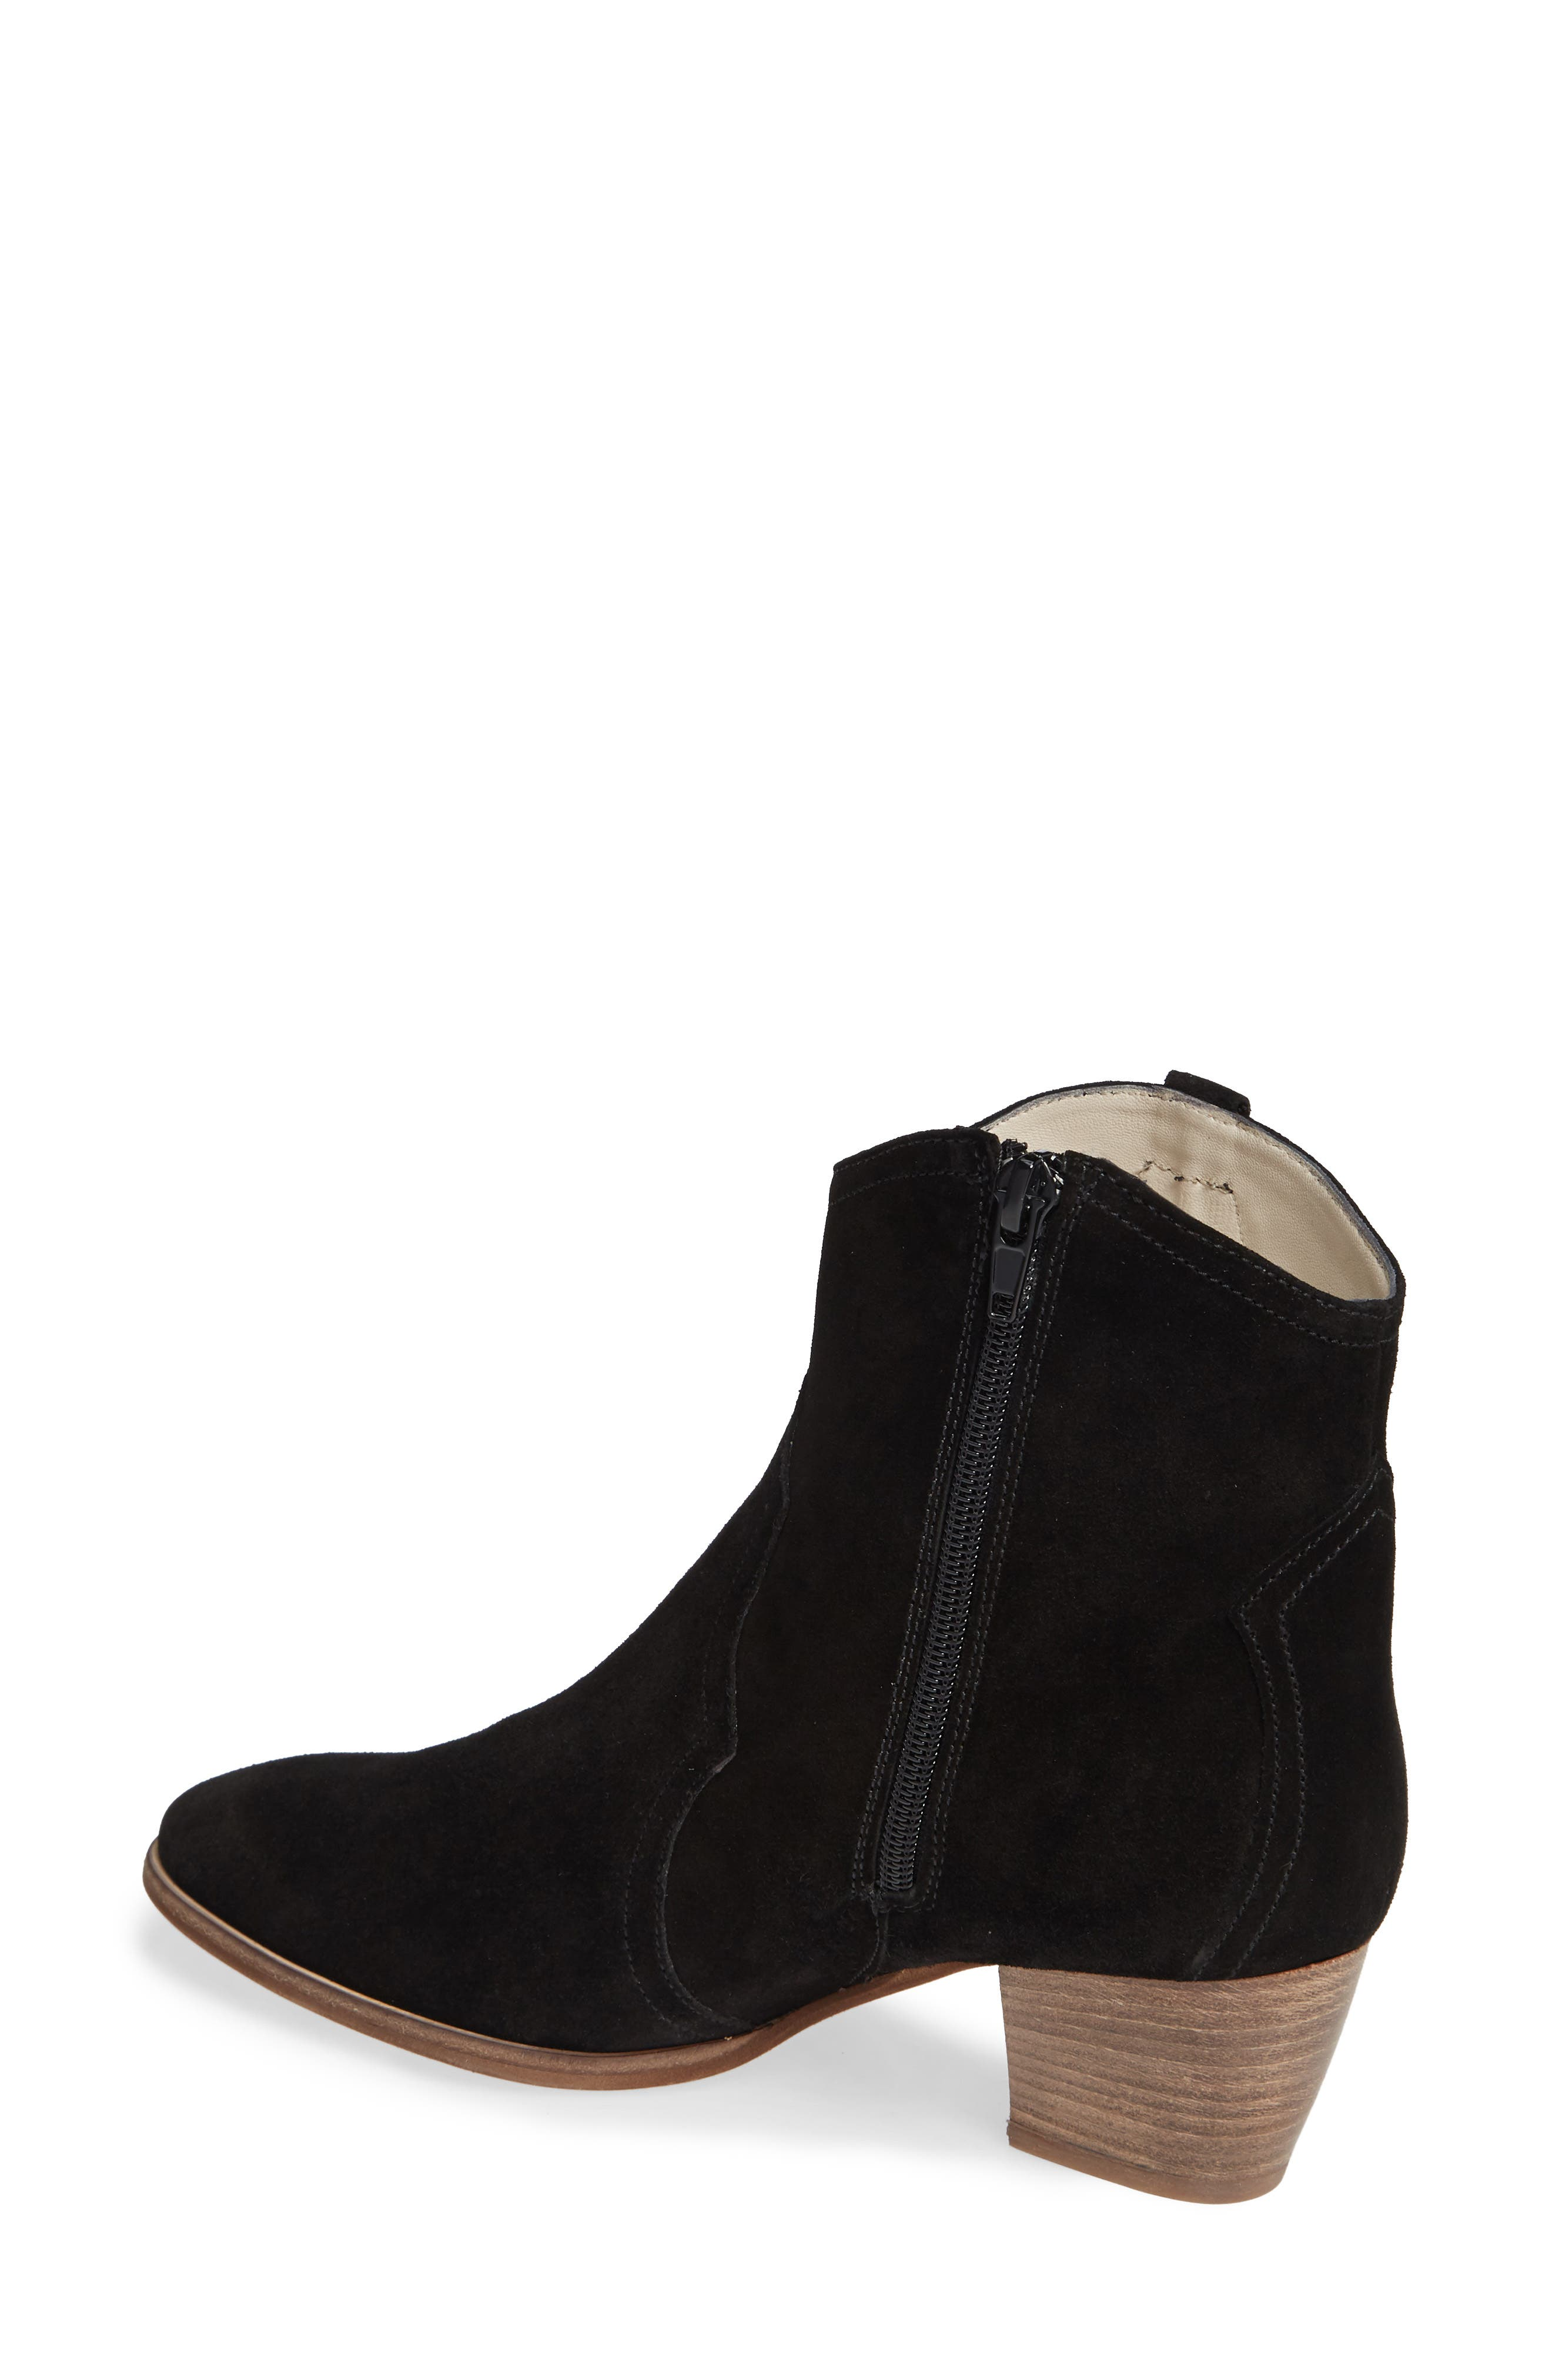 Raggio Western Bootie,                             Alternate thumbnail 2, color,                             BLACK VELOUR SUEDE